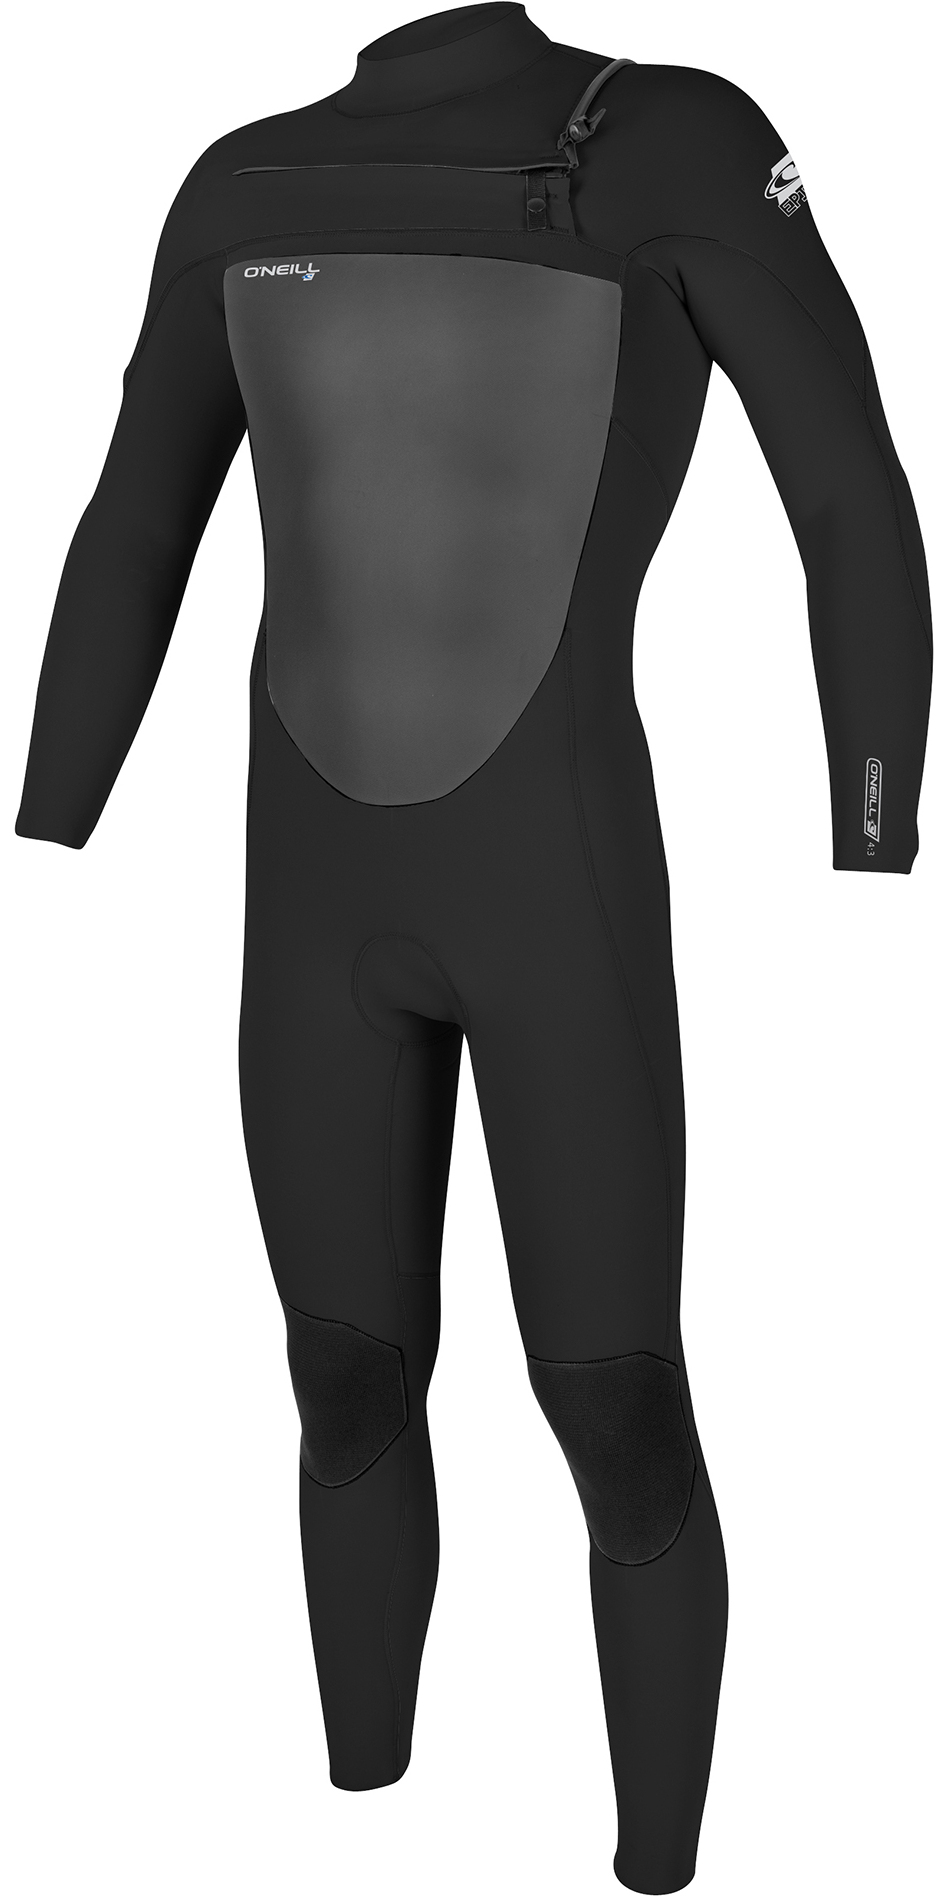 2020 O'Neill Mens Epic 5/4mm Chest Zip Wetsuit 5370 - Black